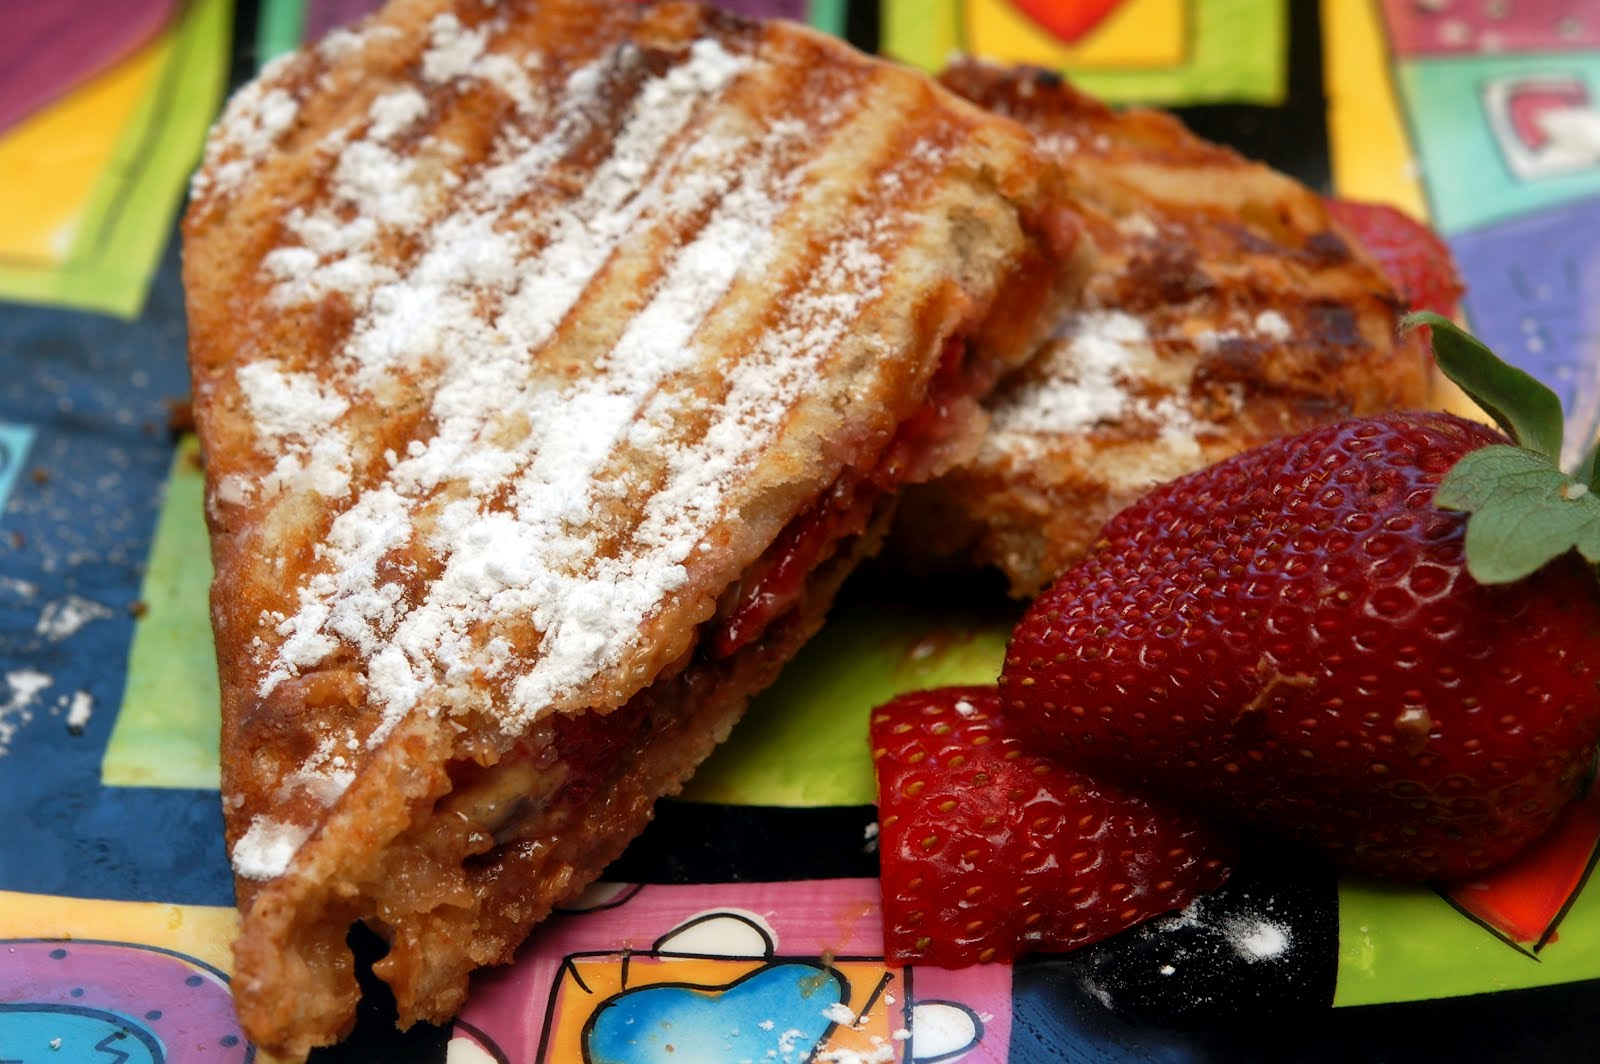 Hugs & CookiesXOXO: NUTELLA & STRAWBERRY PANINIS THAT WILL ROCK YOUR ...